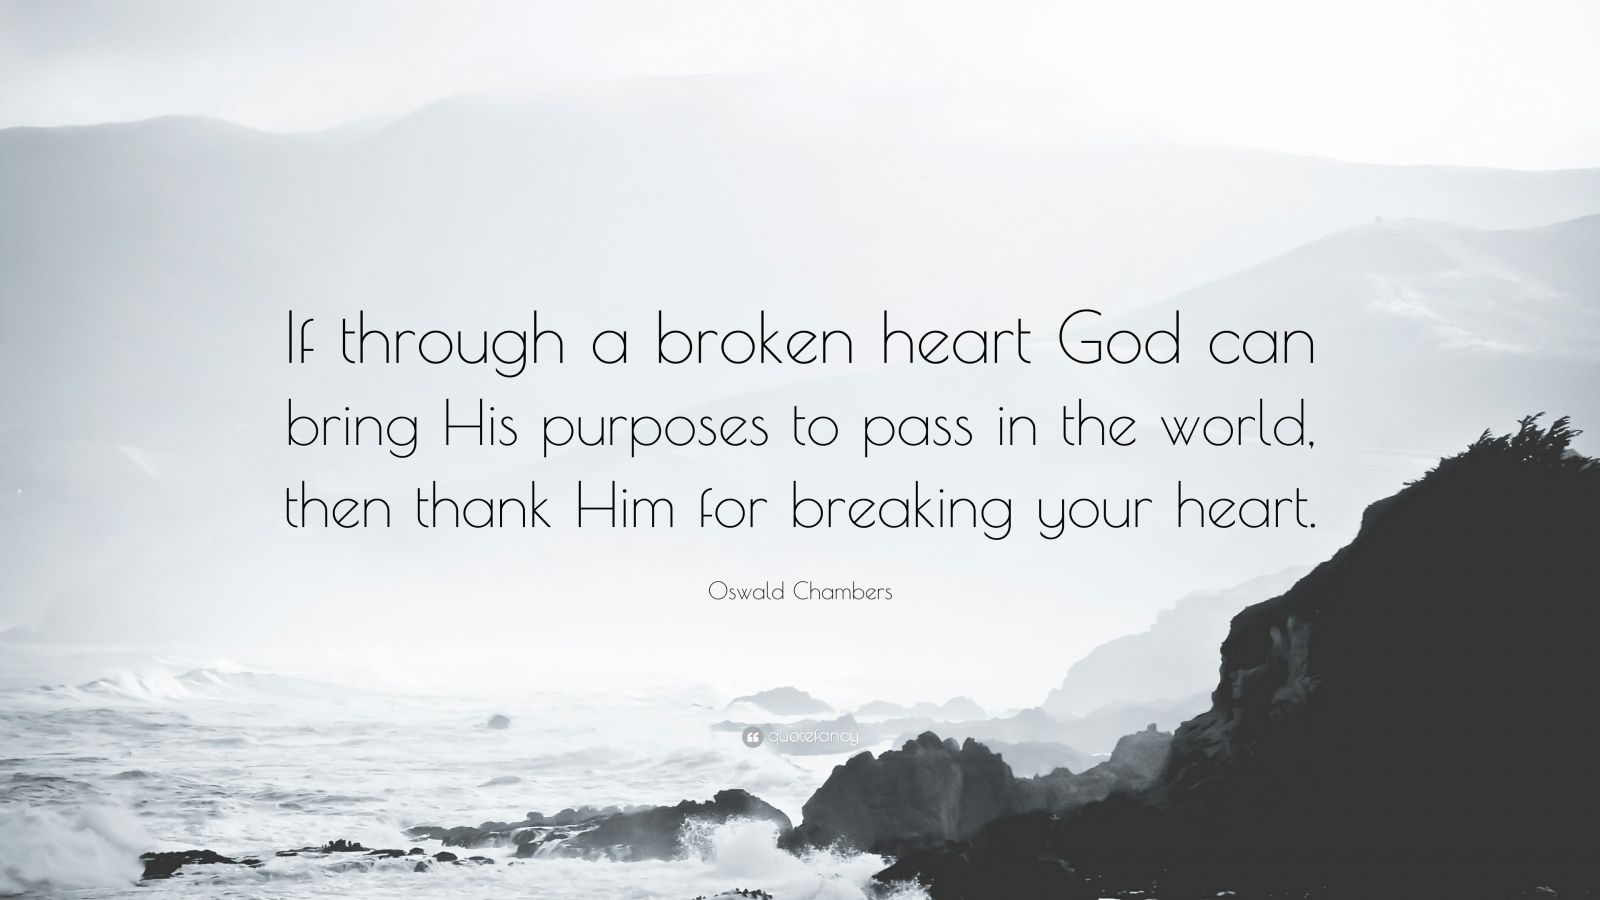 """Oswald Chambers Quote: """"If through a broken heart God can bring His purposes to pass in the world, then thank Him for breaking your heart."""""""